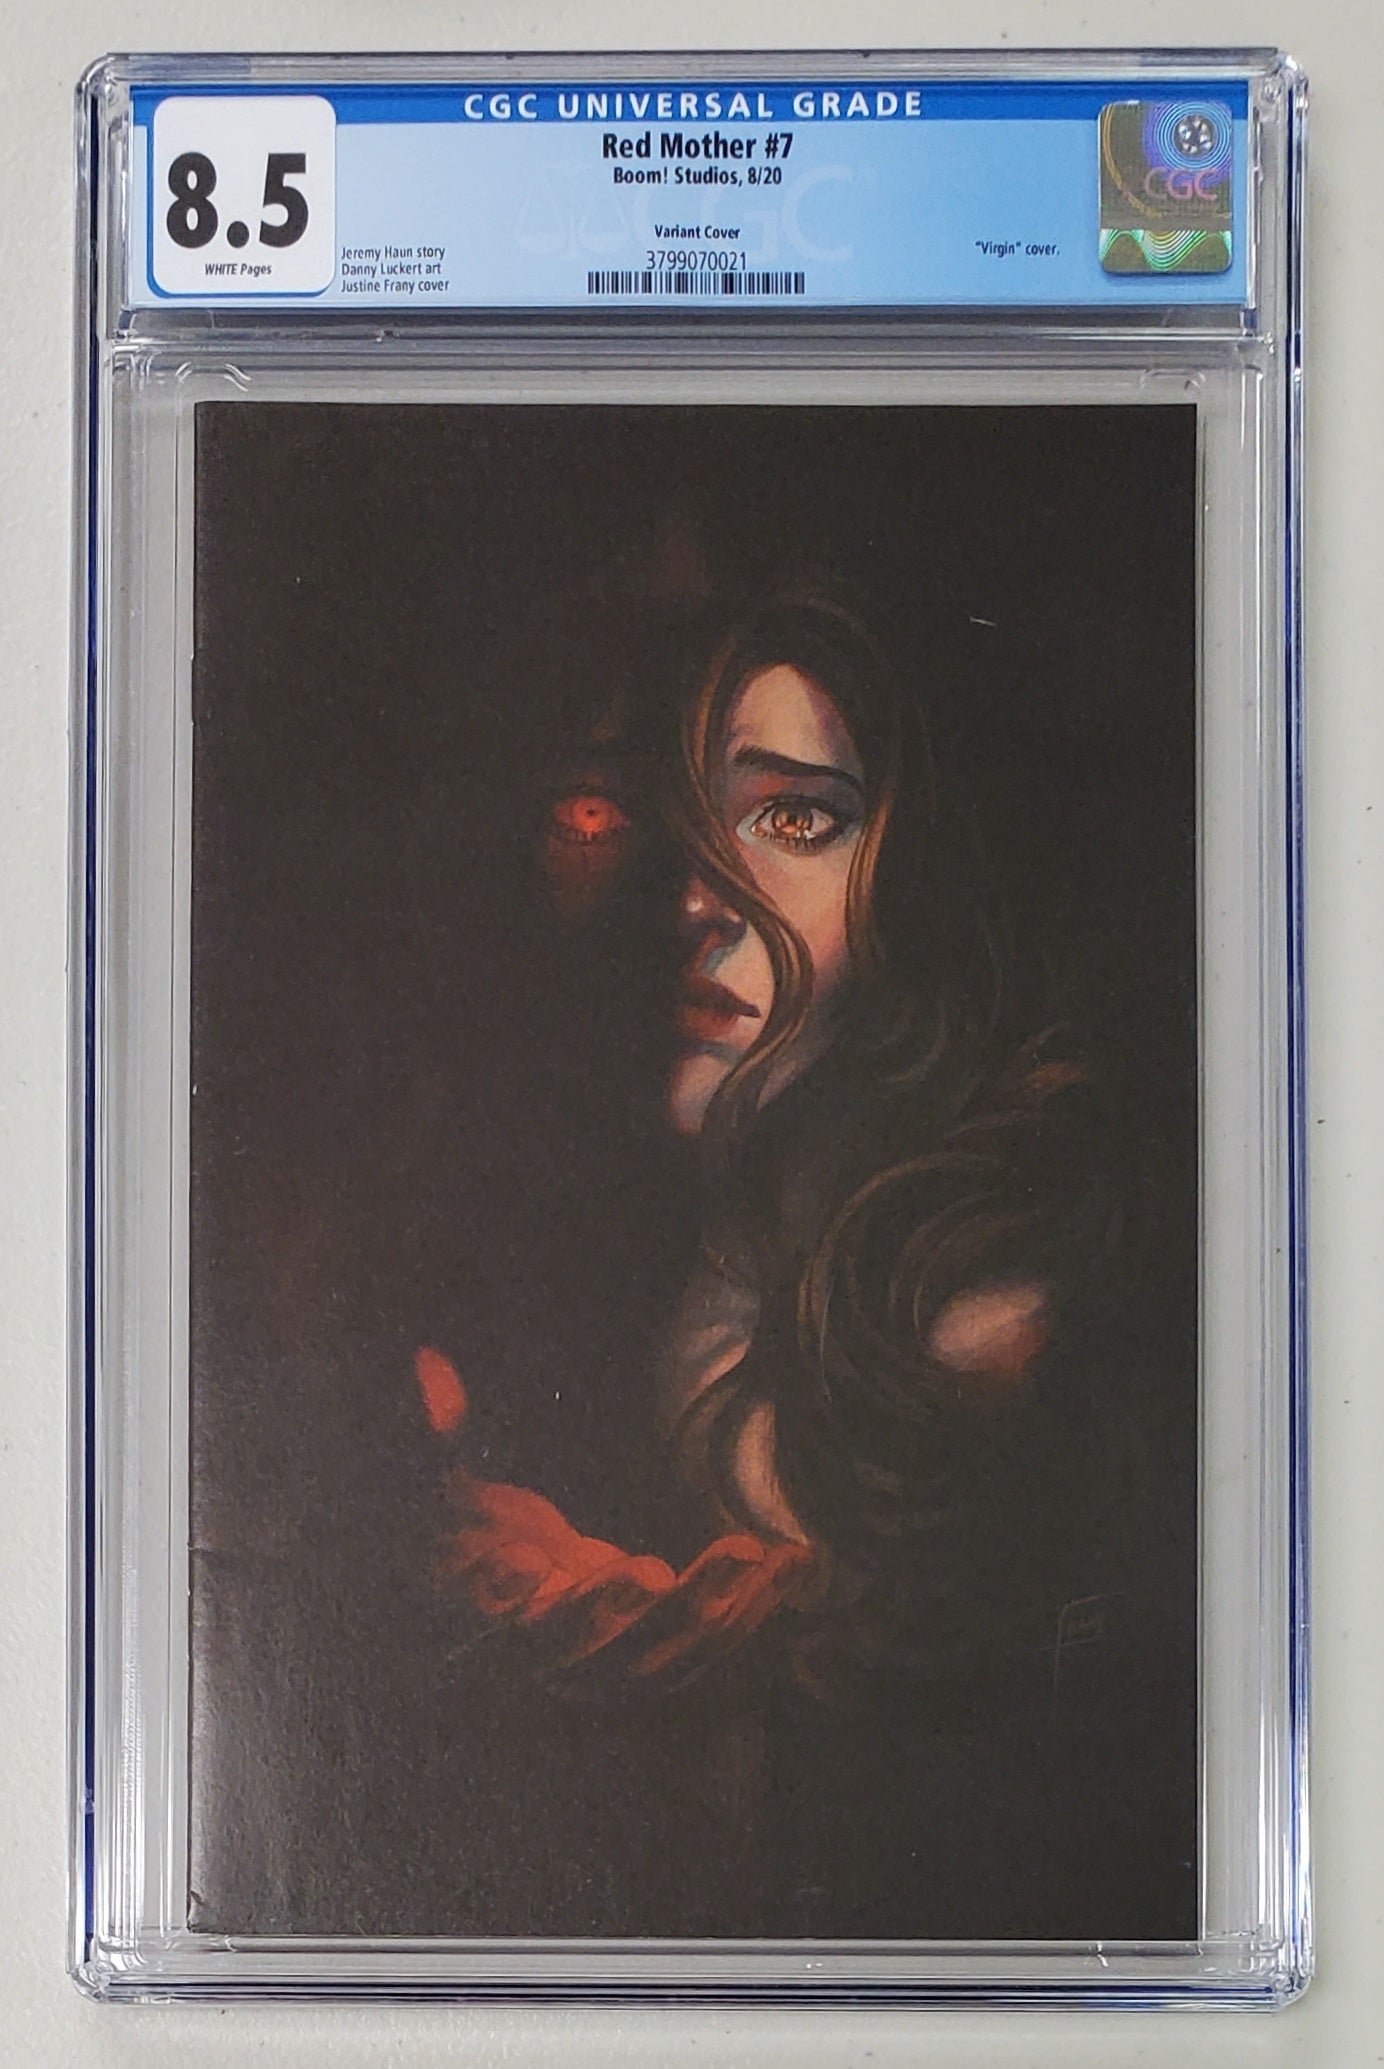 8.5 CGC Red Mother #1 Frany 1:10 Virgin Variant [3799070021]